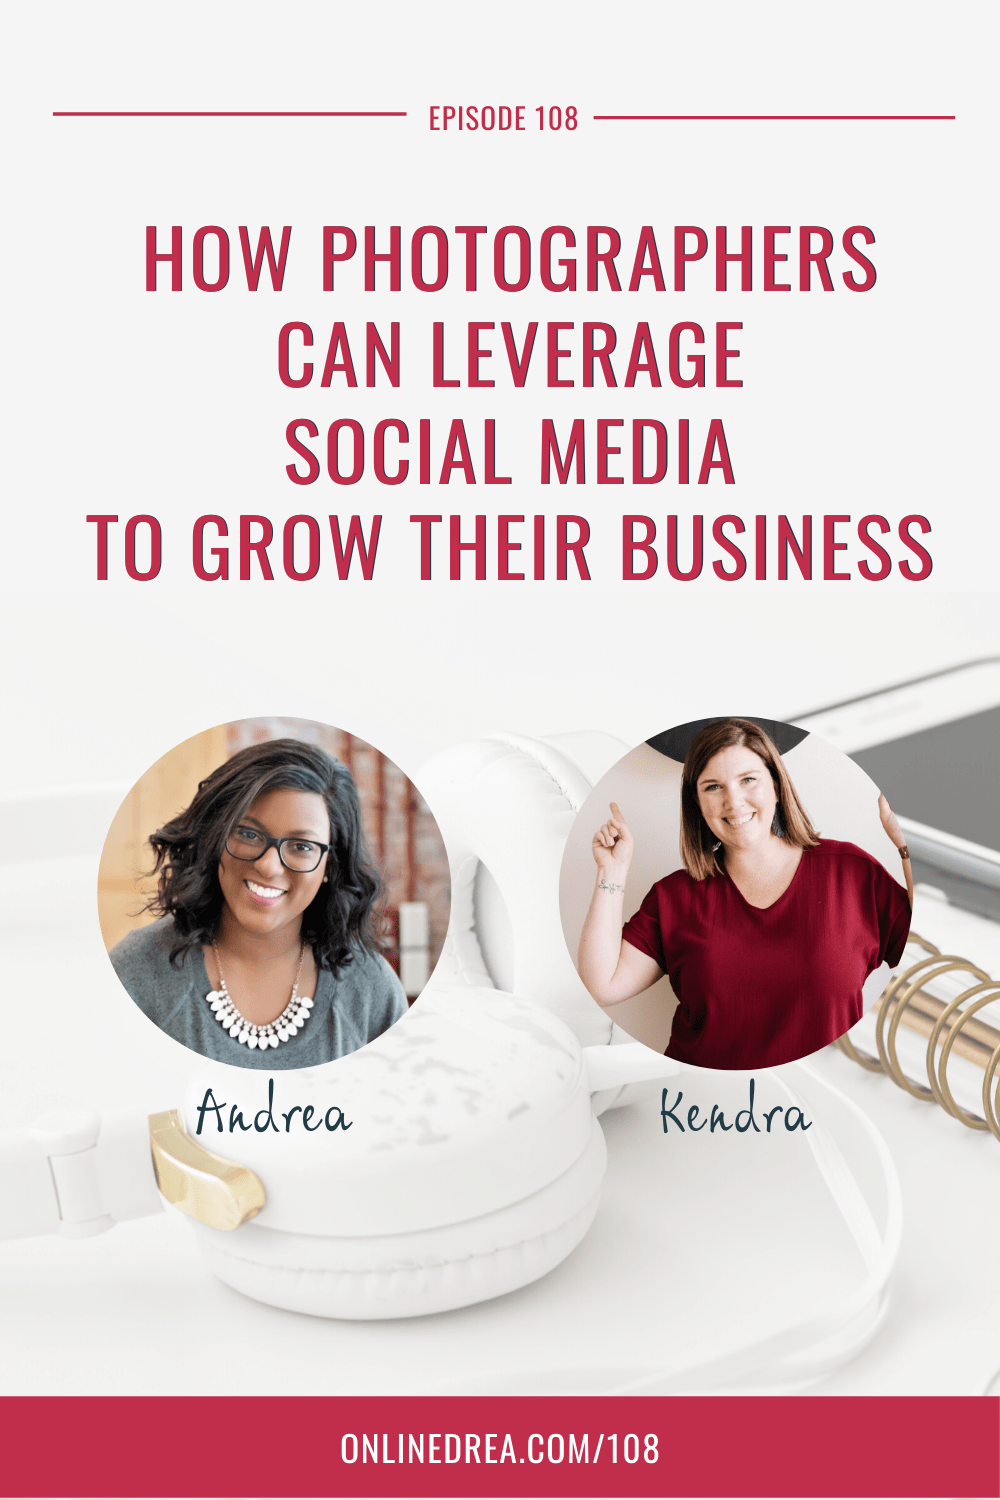 How Photographers Can Leverage Social Media to Grow Their Business with Kendra Swalls